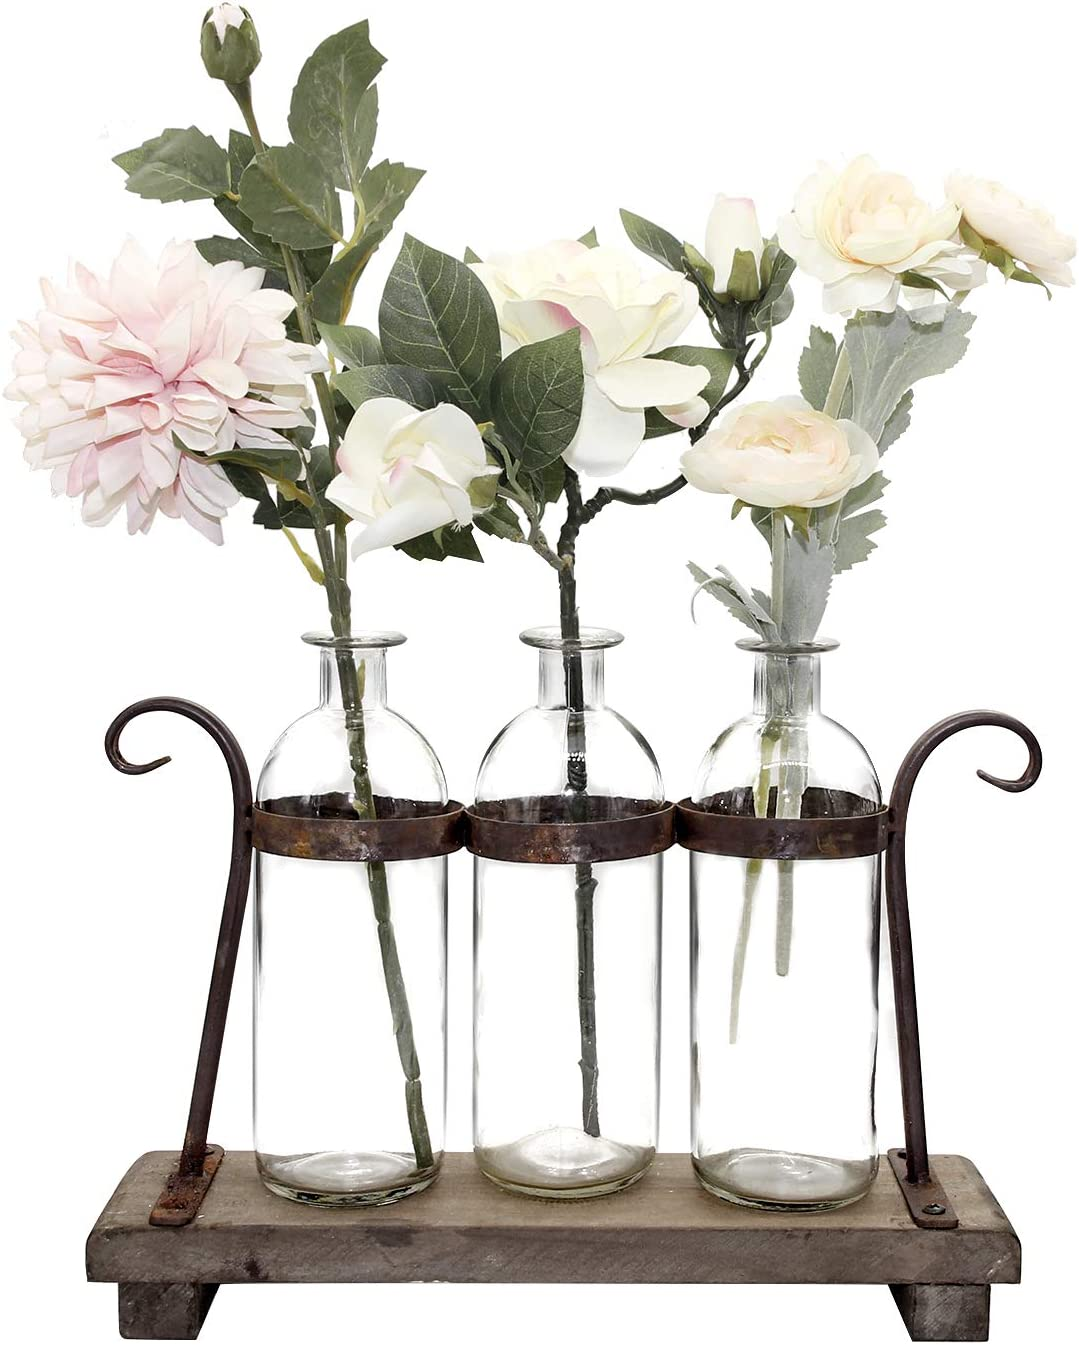 FUNSOBA Rustic Flower Vase Set with Rack Stand Farmhouse Glass Bottles for Decor Table centerpieces